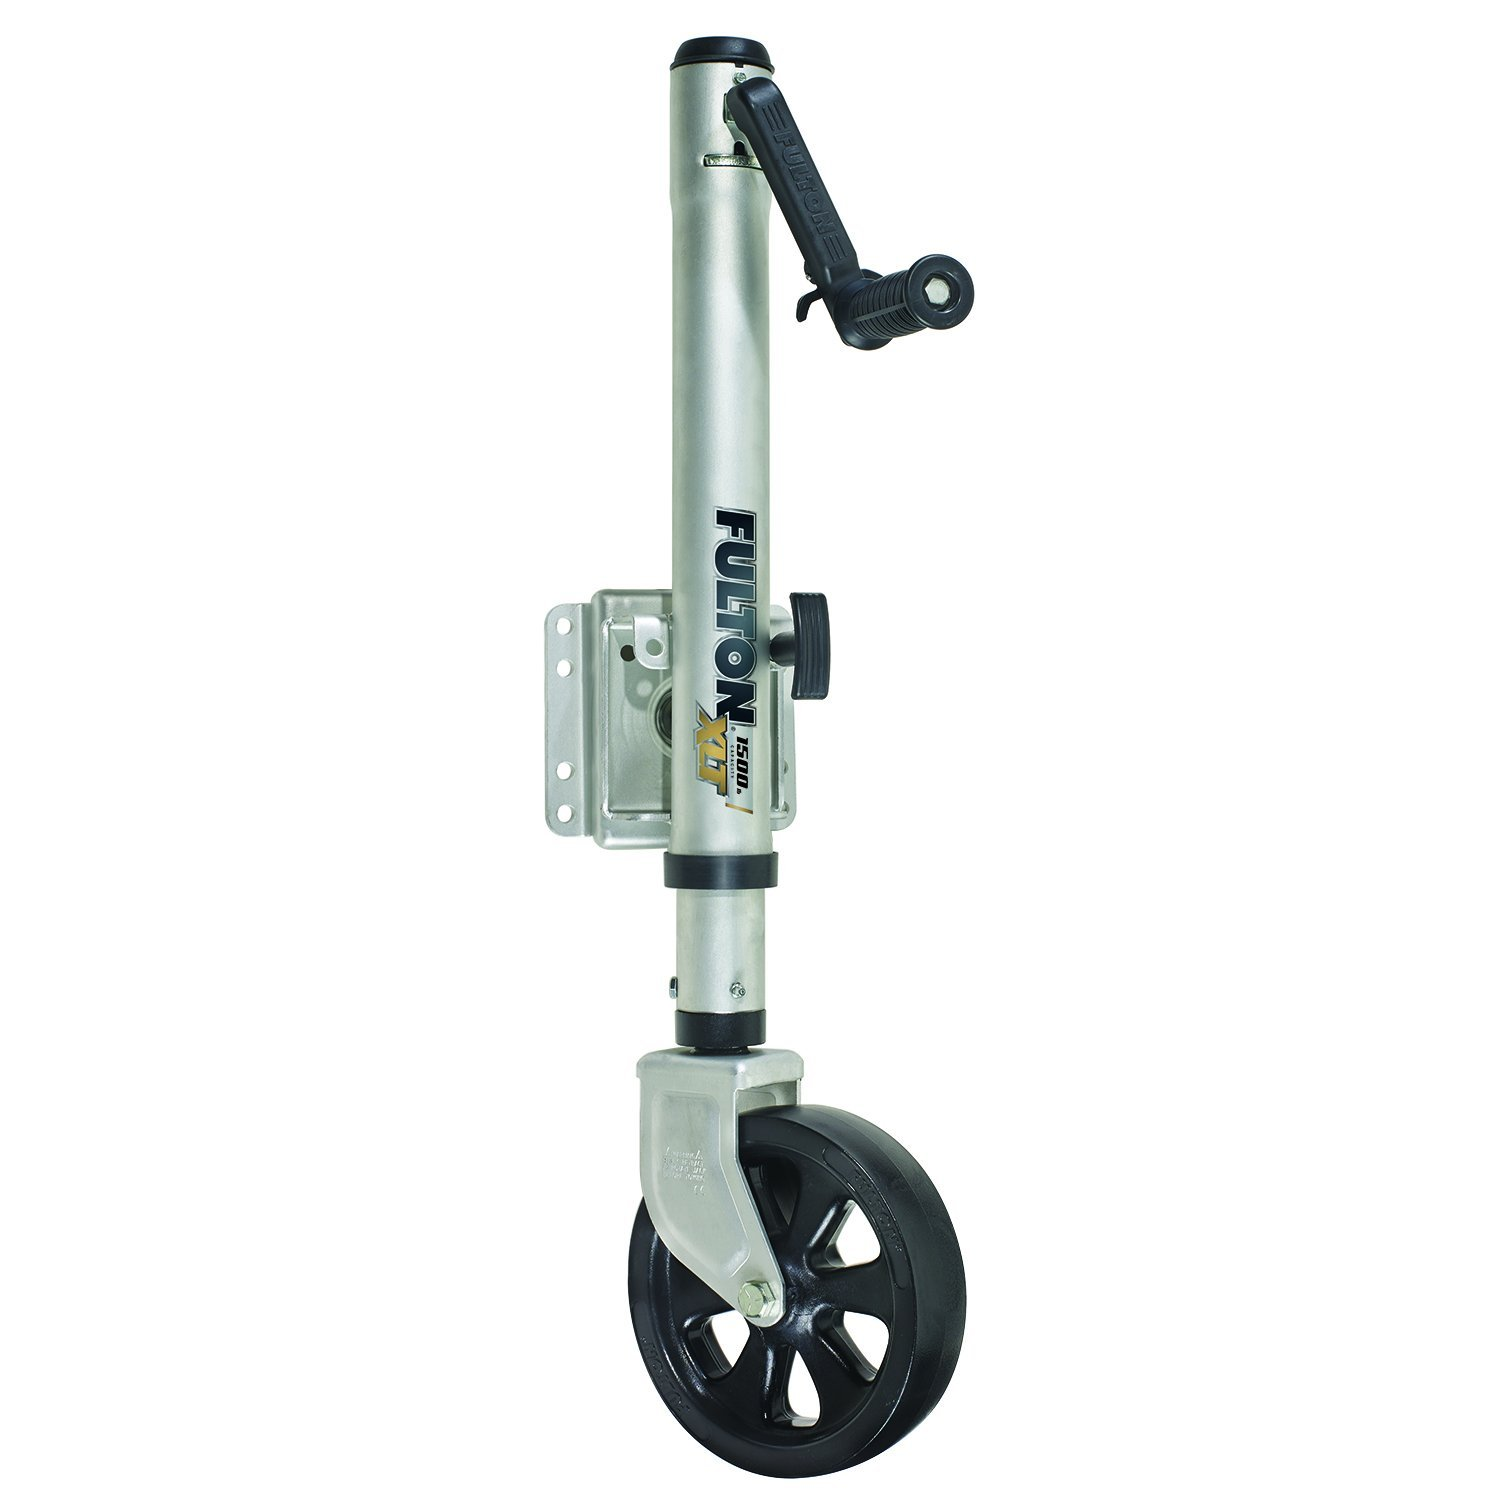 Fulton (141133) XLT Sharkskin Finish Bolt-On Swing-Away Jack - 1500 lb. Weight Capacity by Fulton